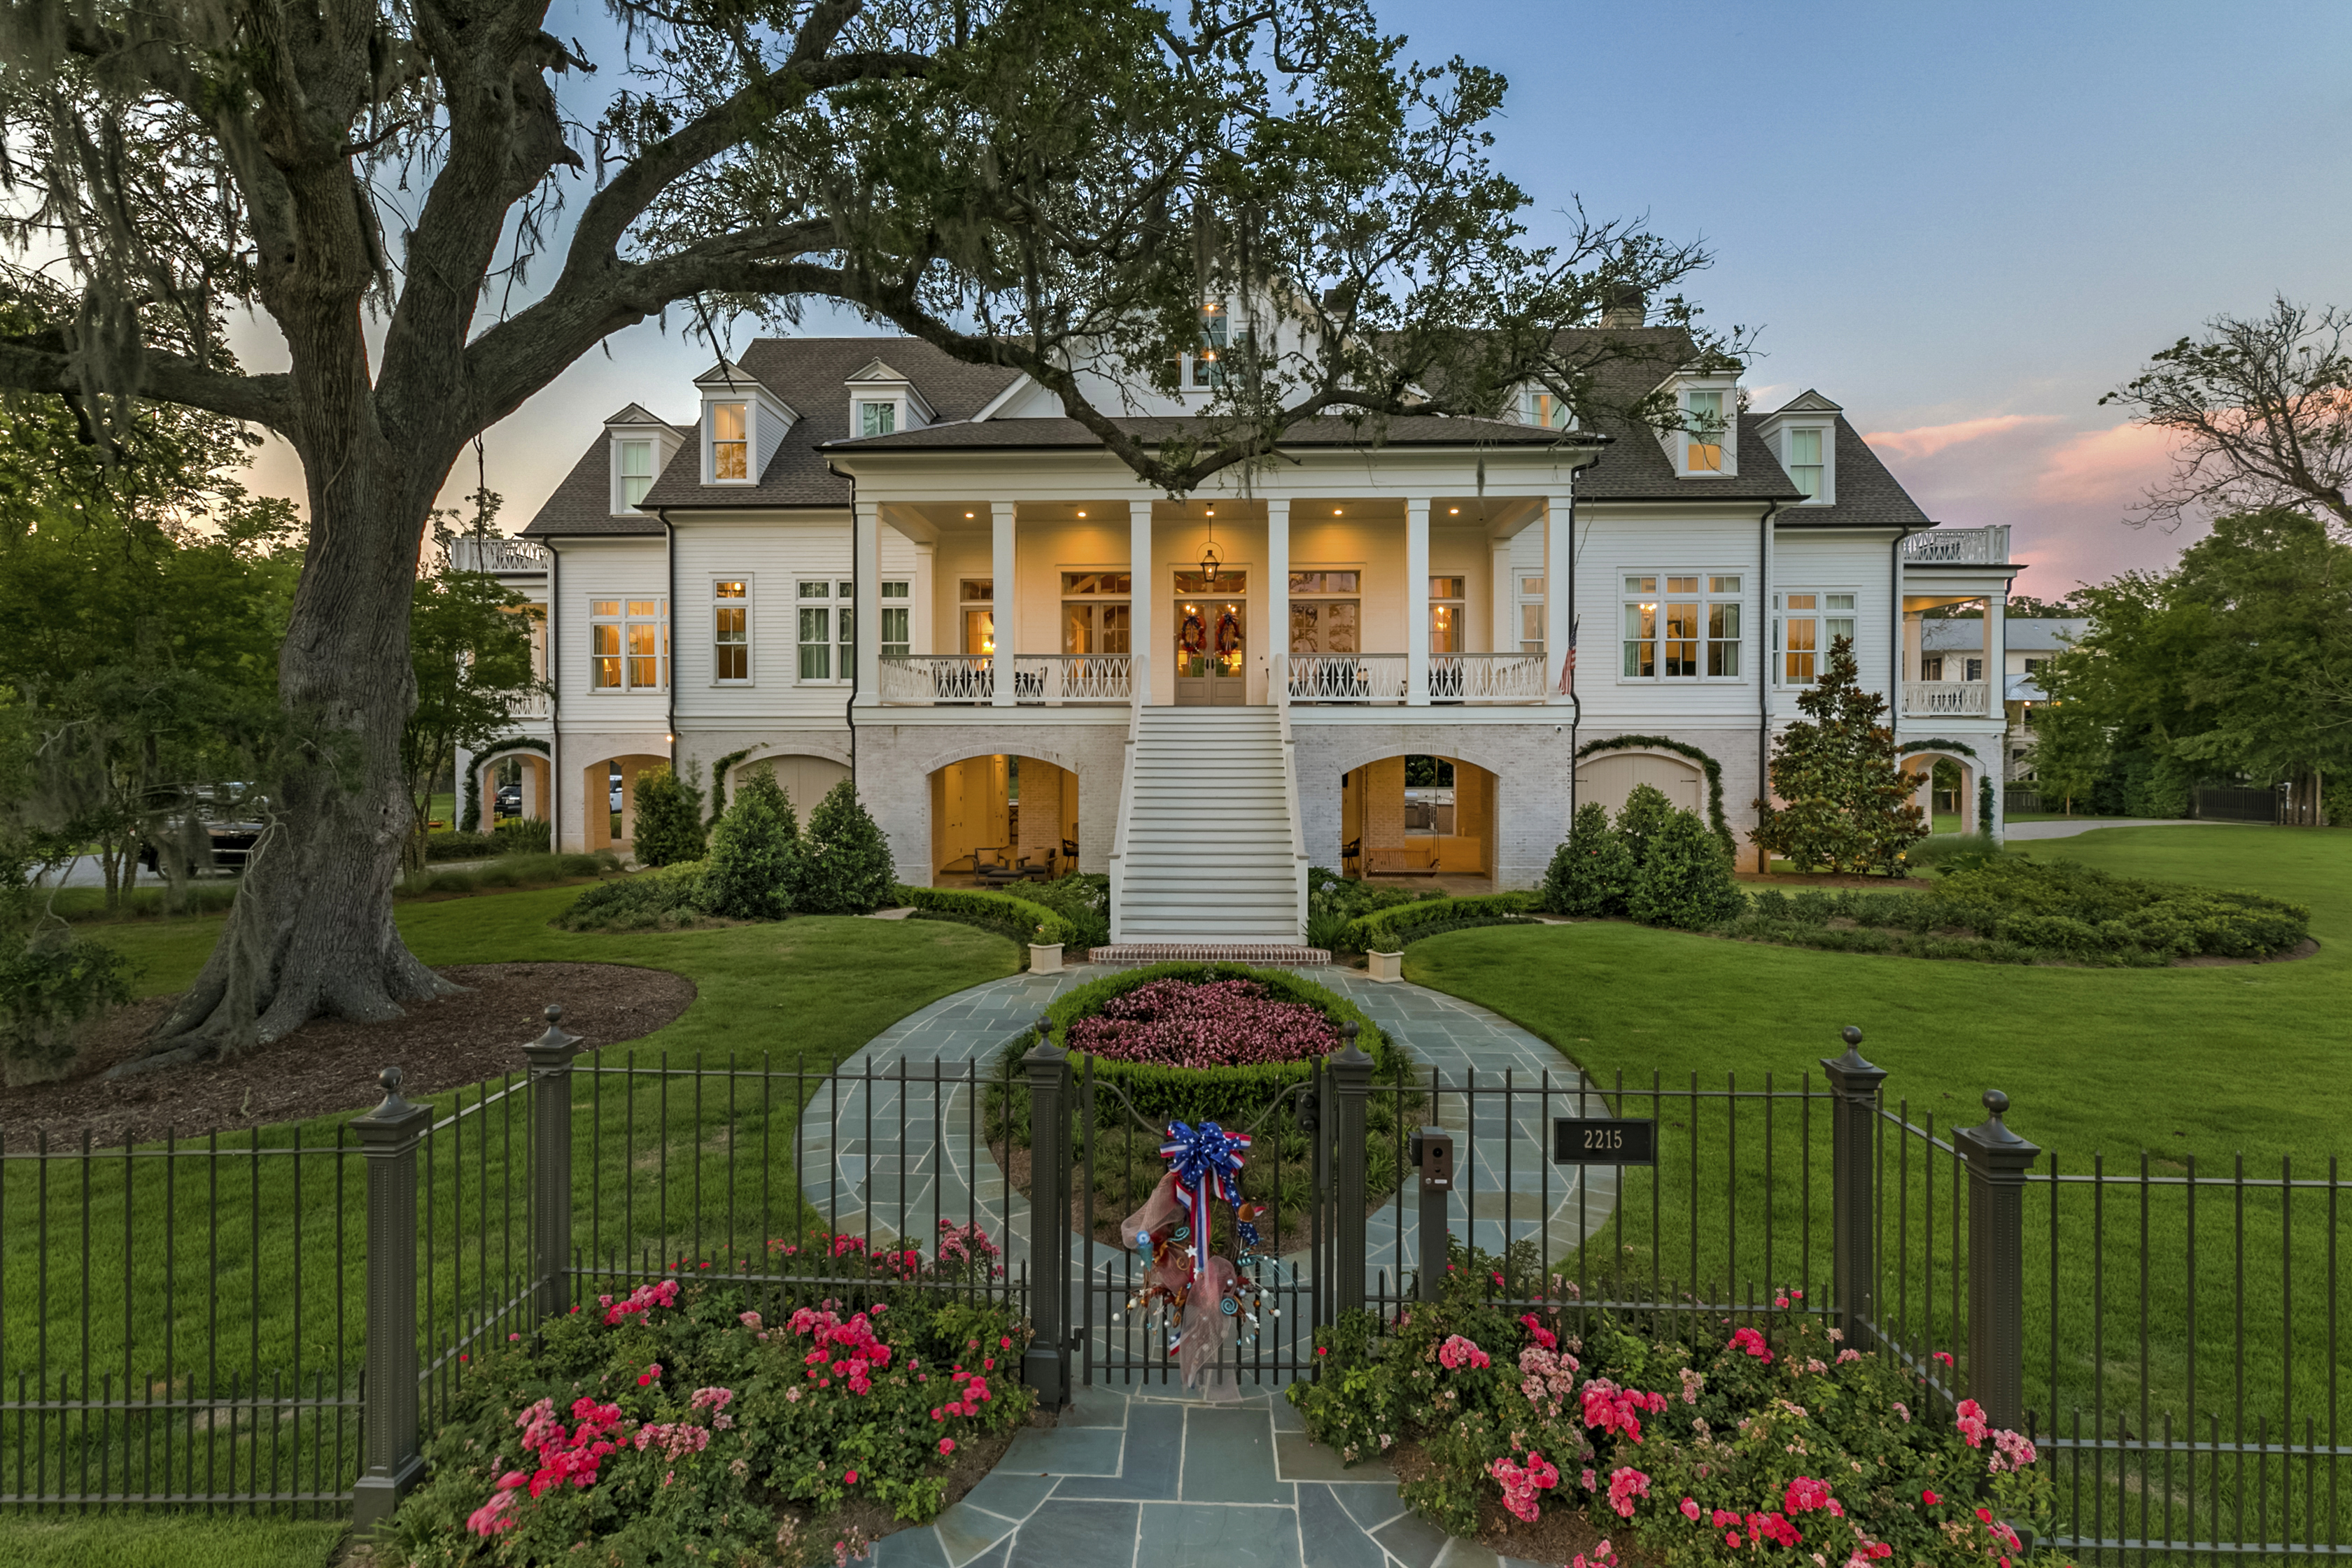 © NOLA Real Estate Marketing